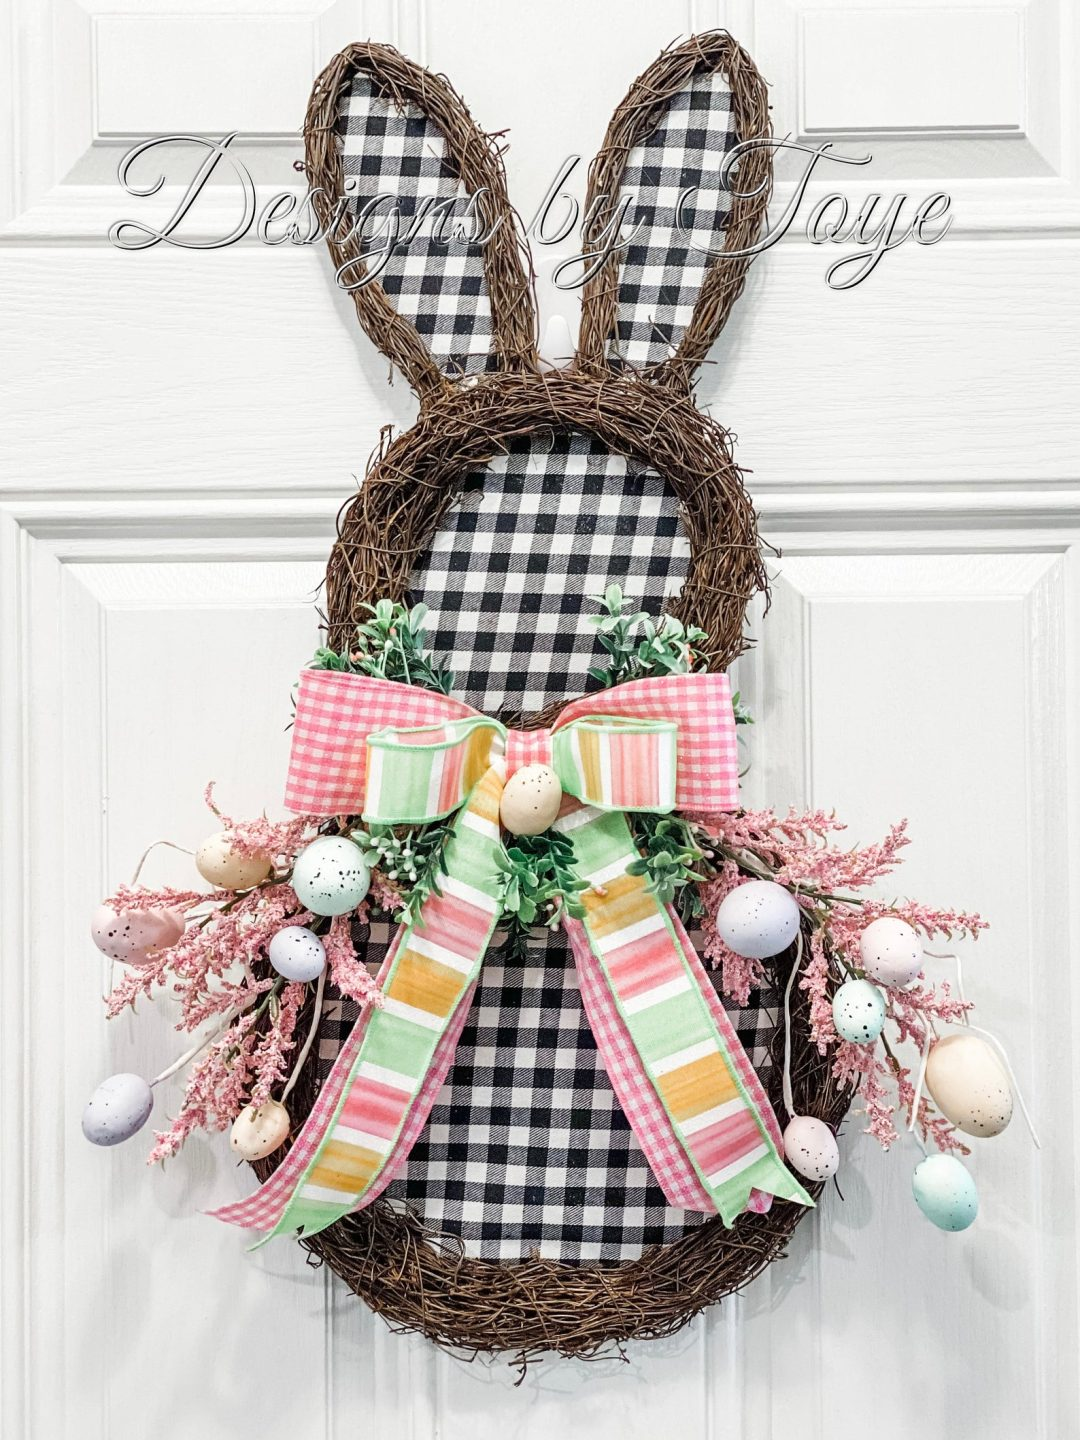 Gingham bunny wreath with eggs and ribbon